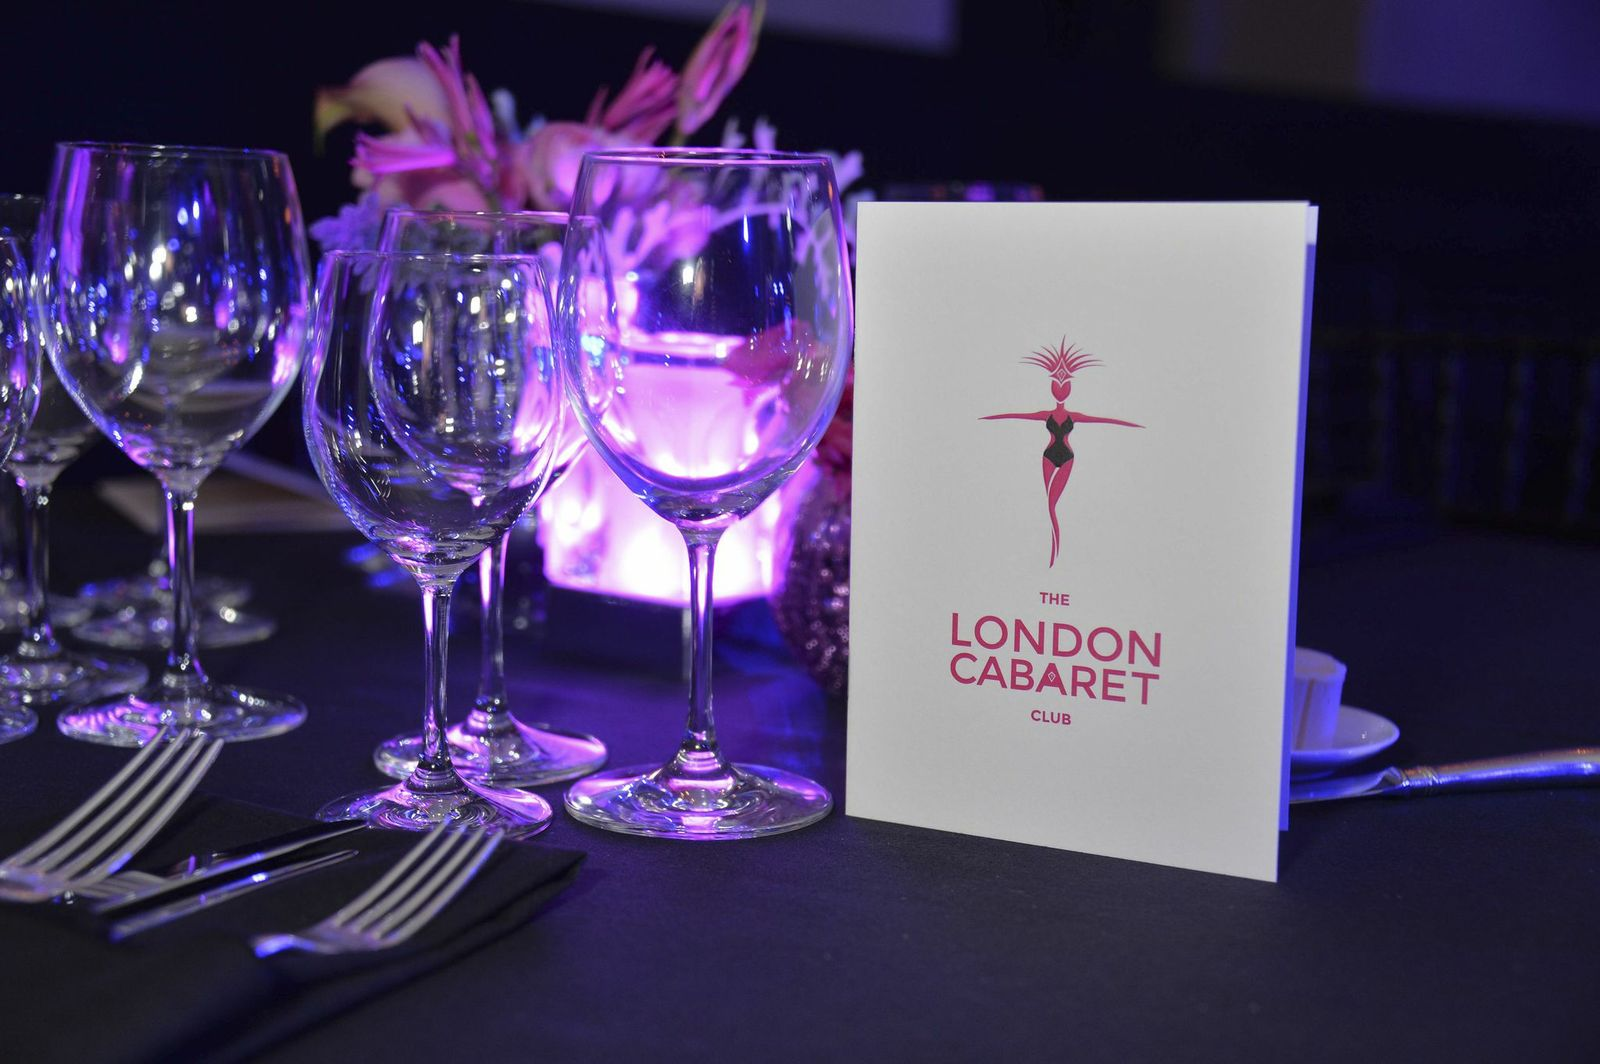 GIFT VOUCHER TO THE LONDON CABARET CLUB